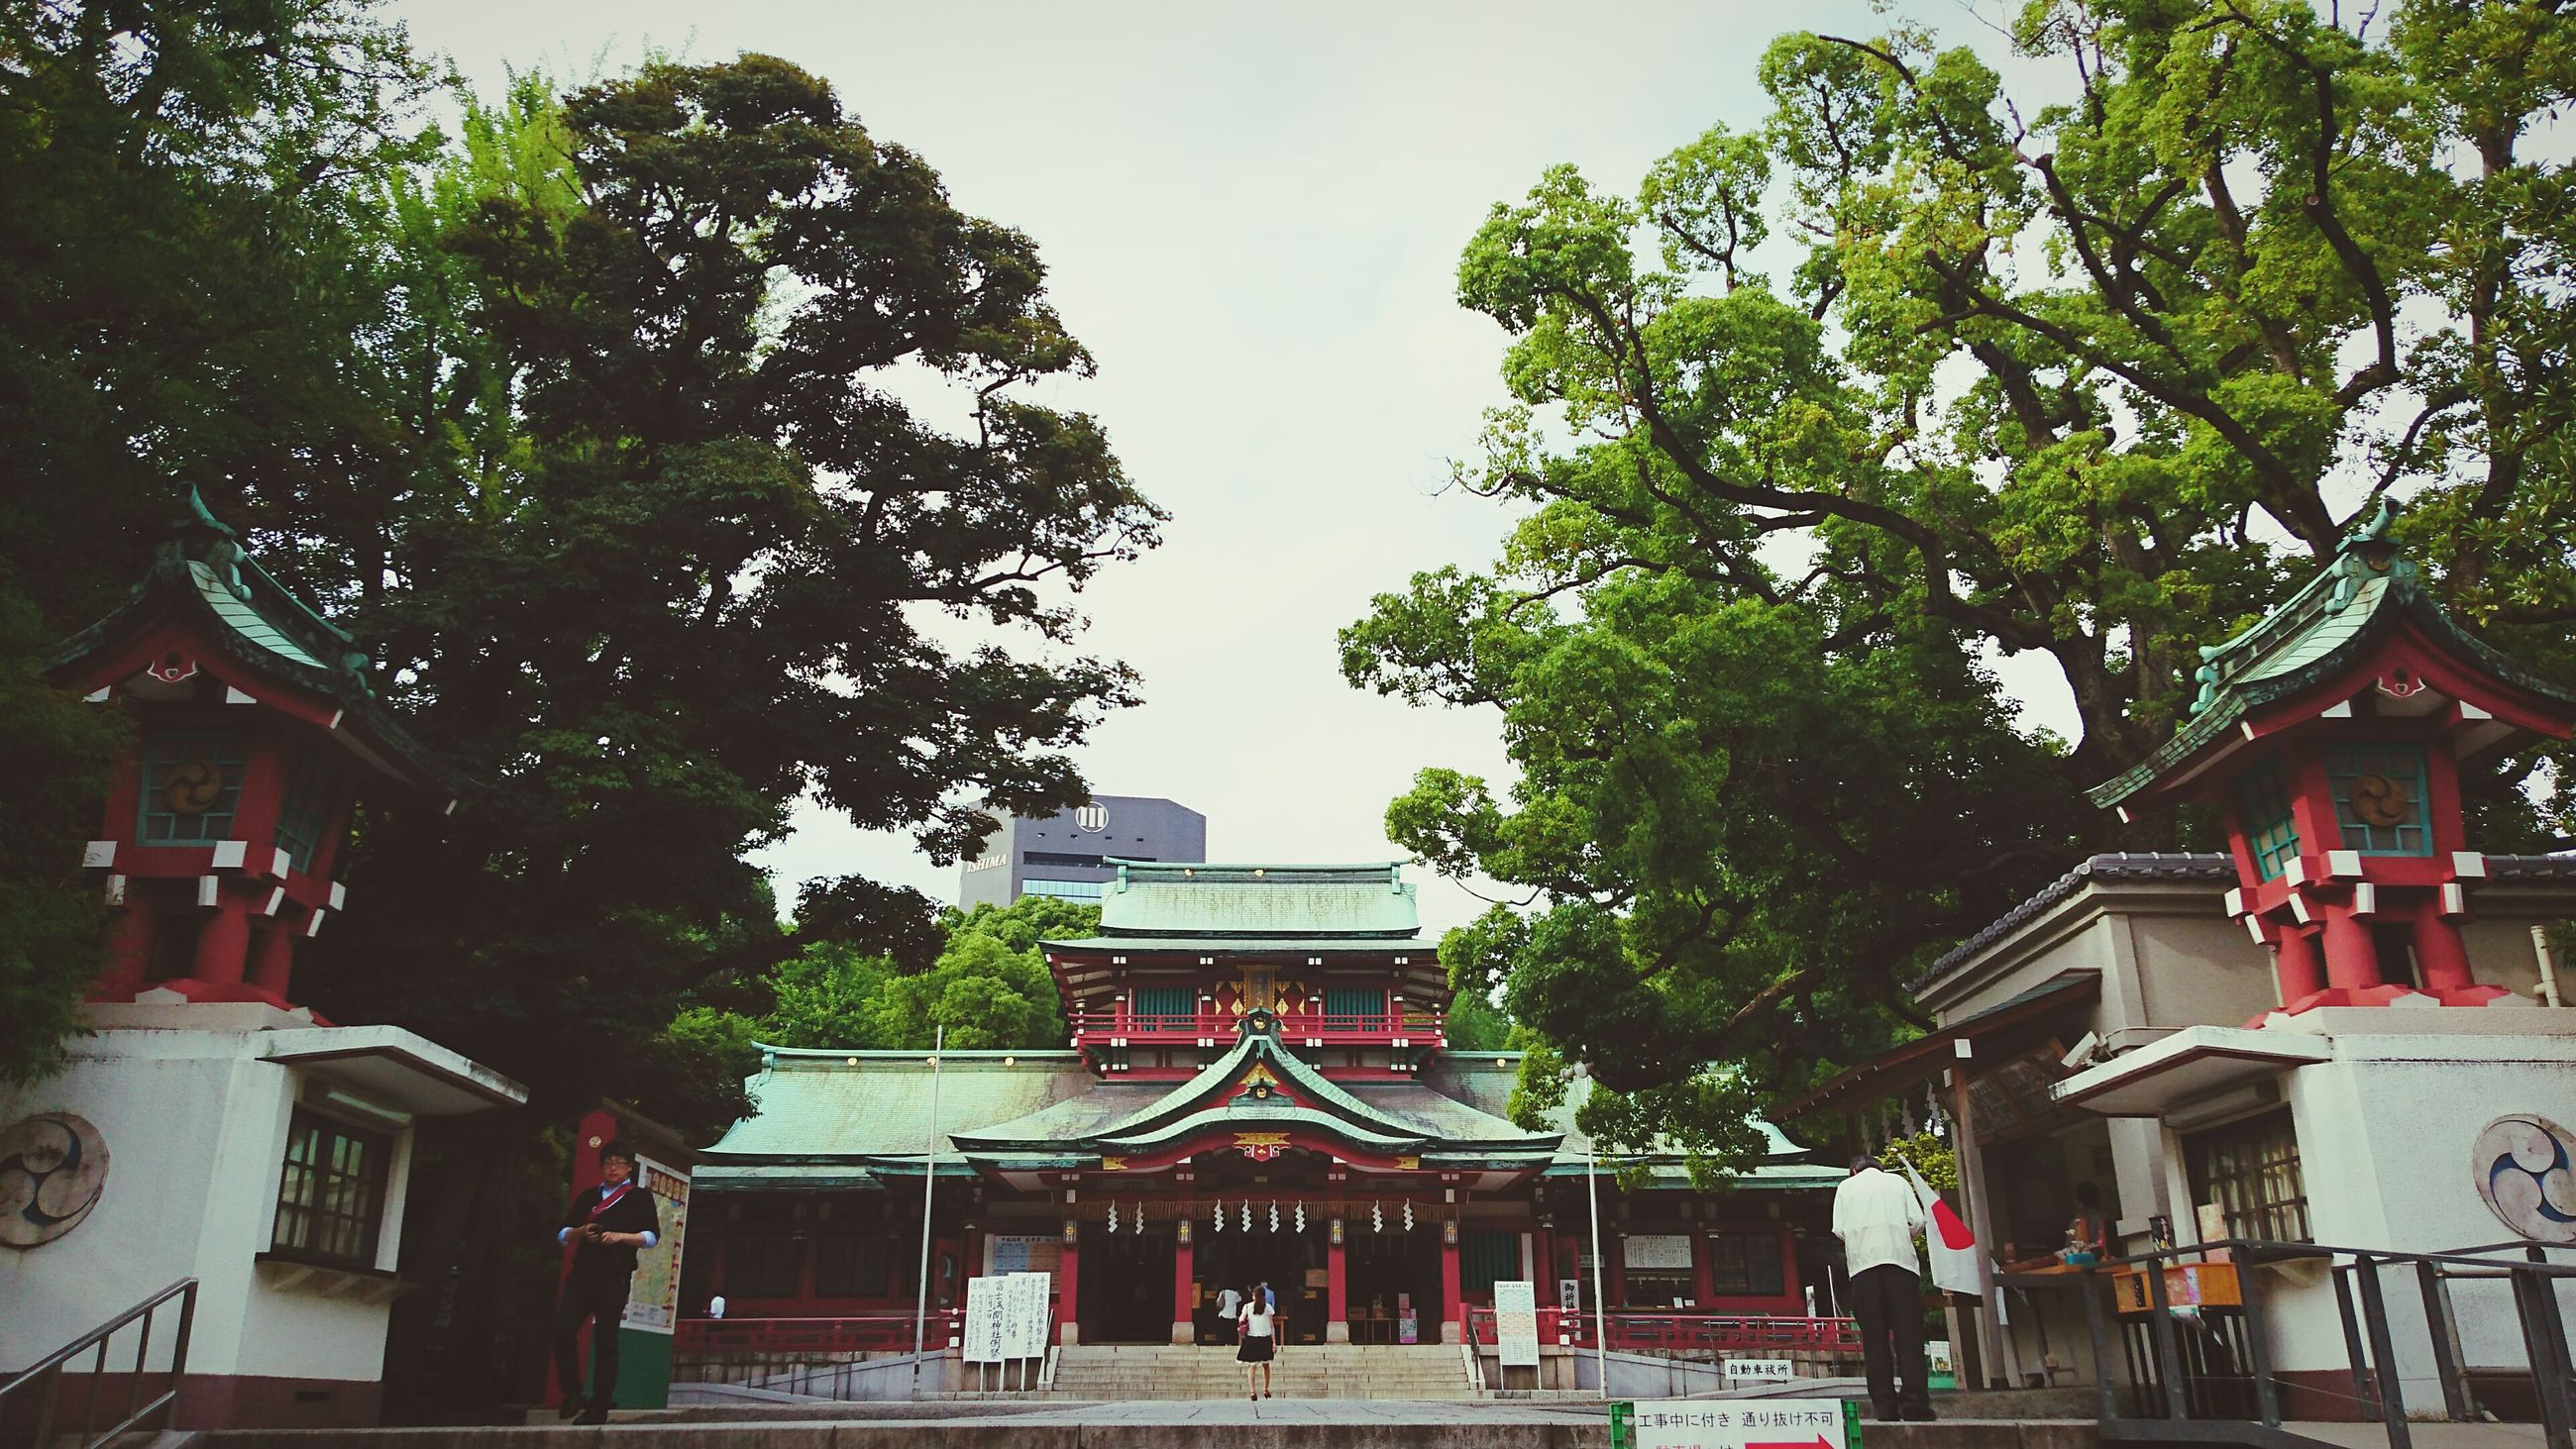 building exterior, architecture, built structure, tree, place of worship, religion, spirituality, low angle view, roof, temple - building, sky, outdoors, day, no people, facade, exterior, growth, nature